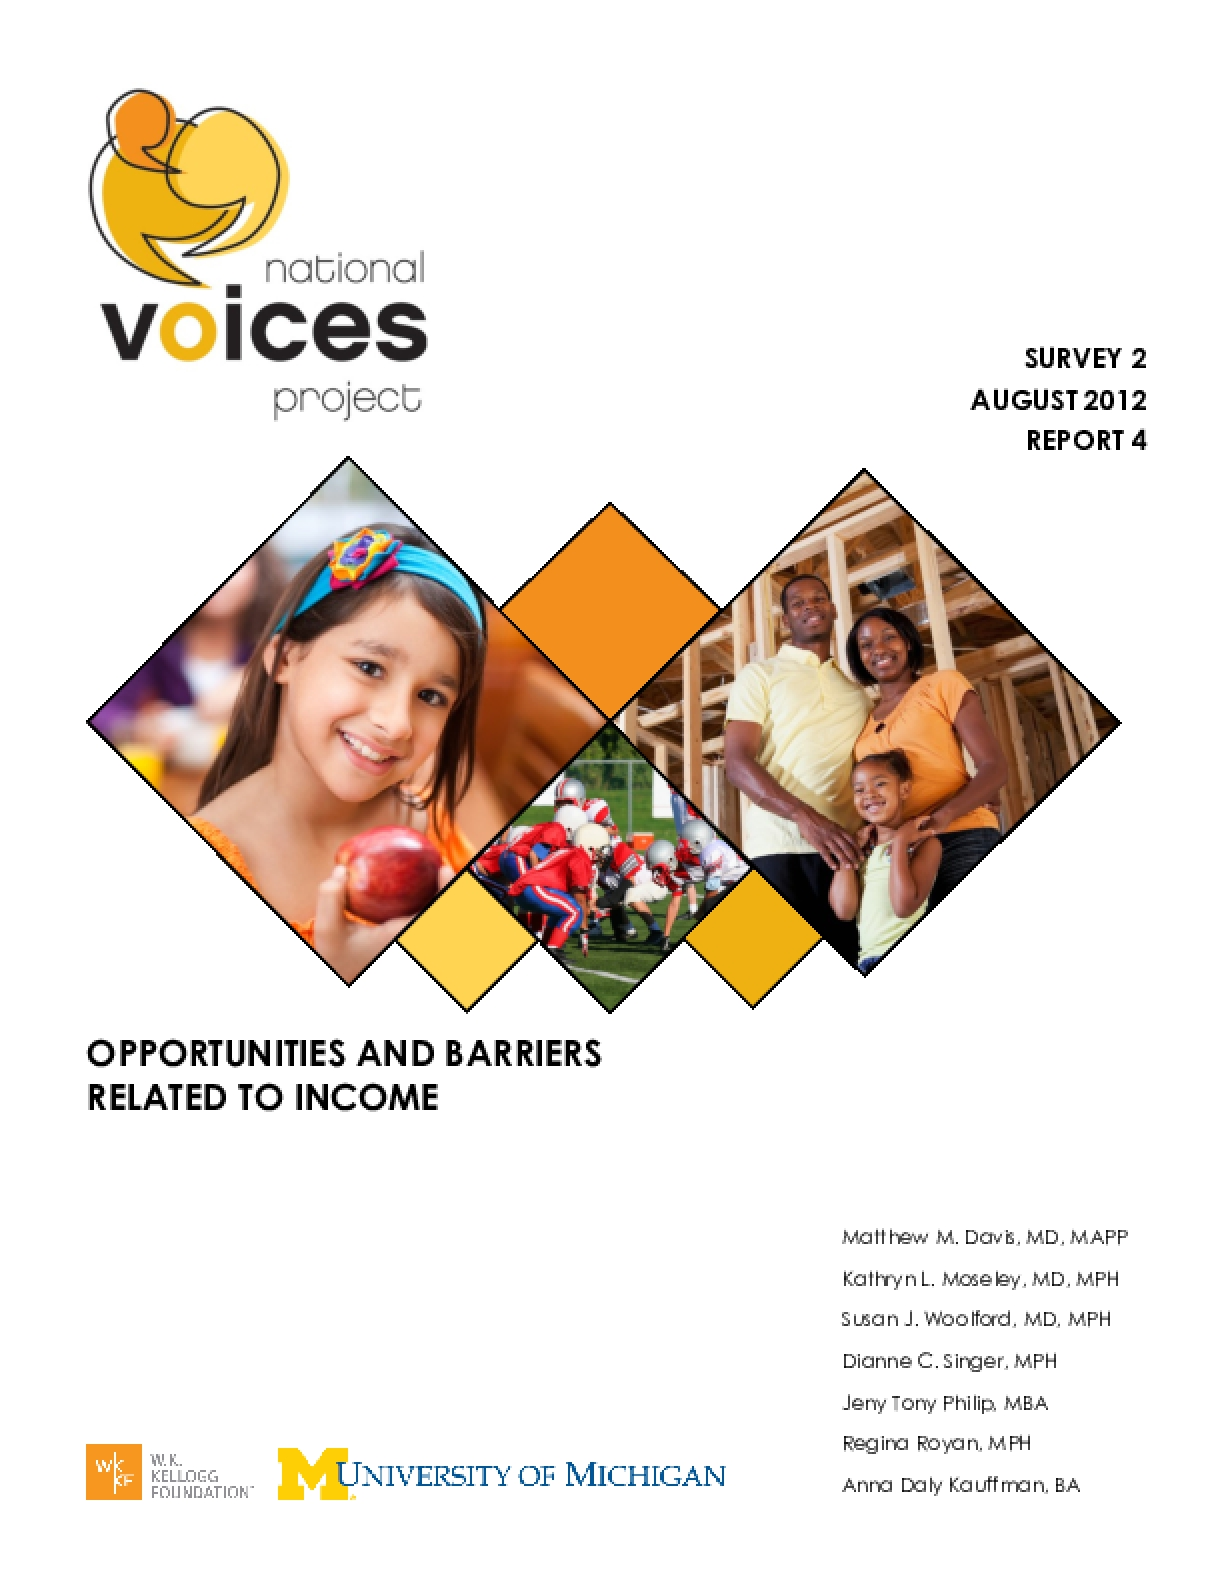 Opportunities and Barriers Related to Income (Survey 2, Report 4)